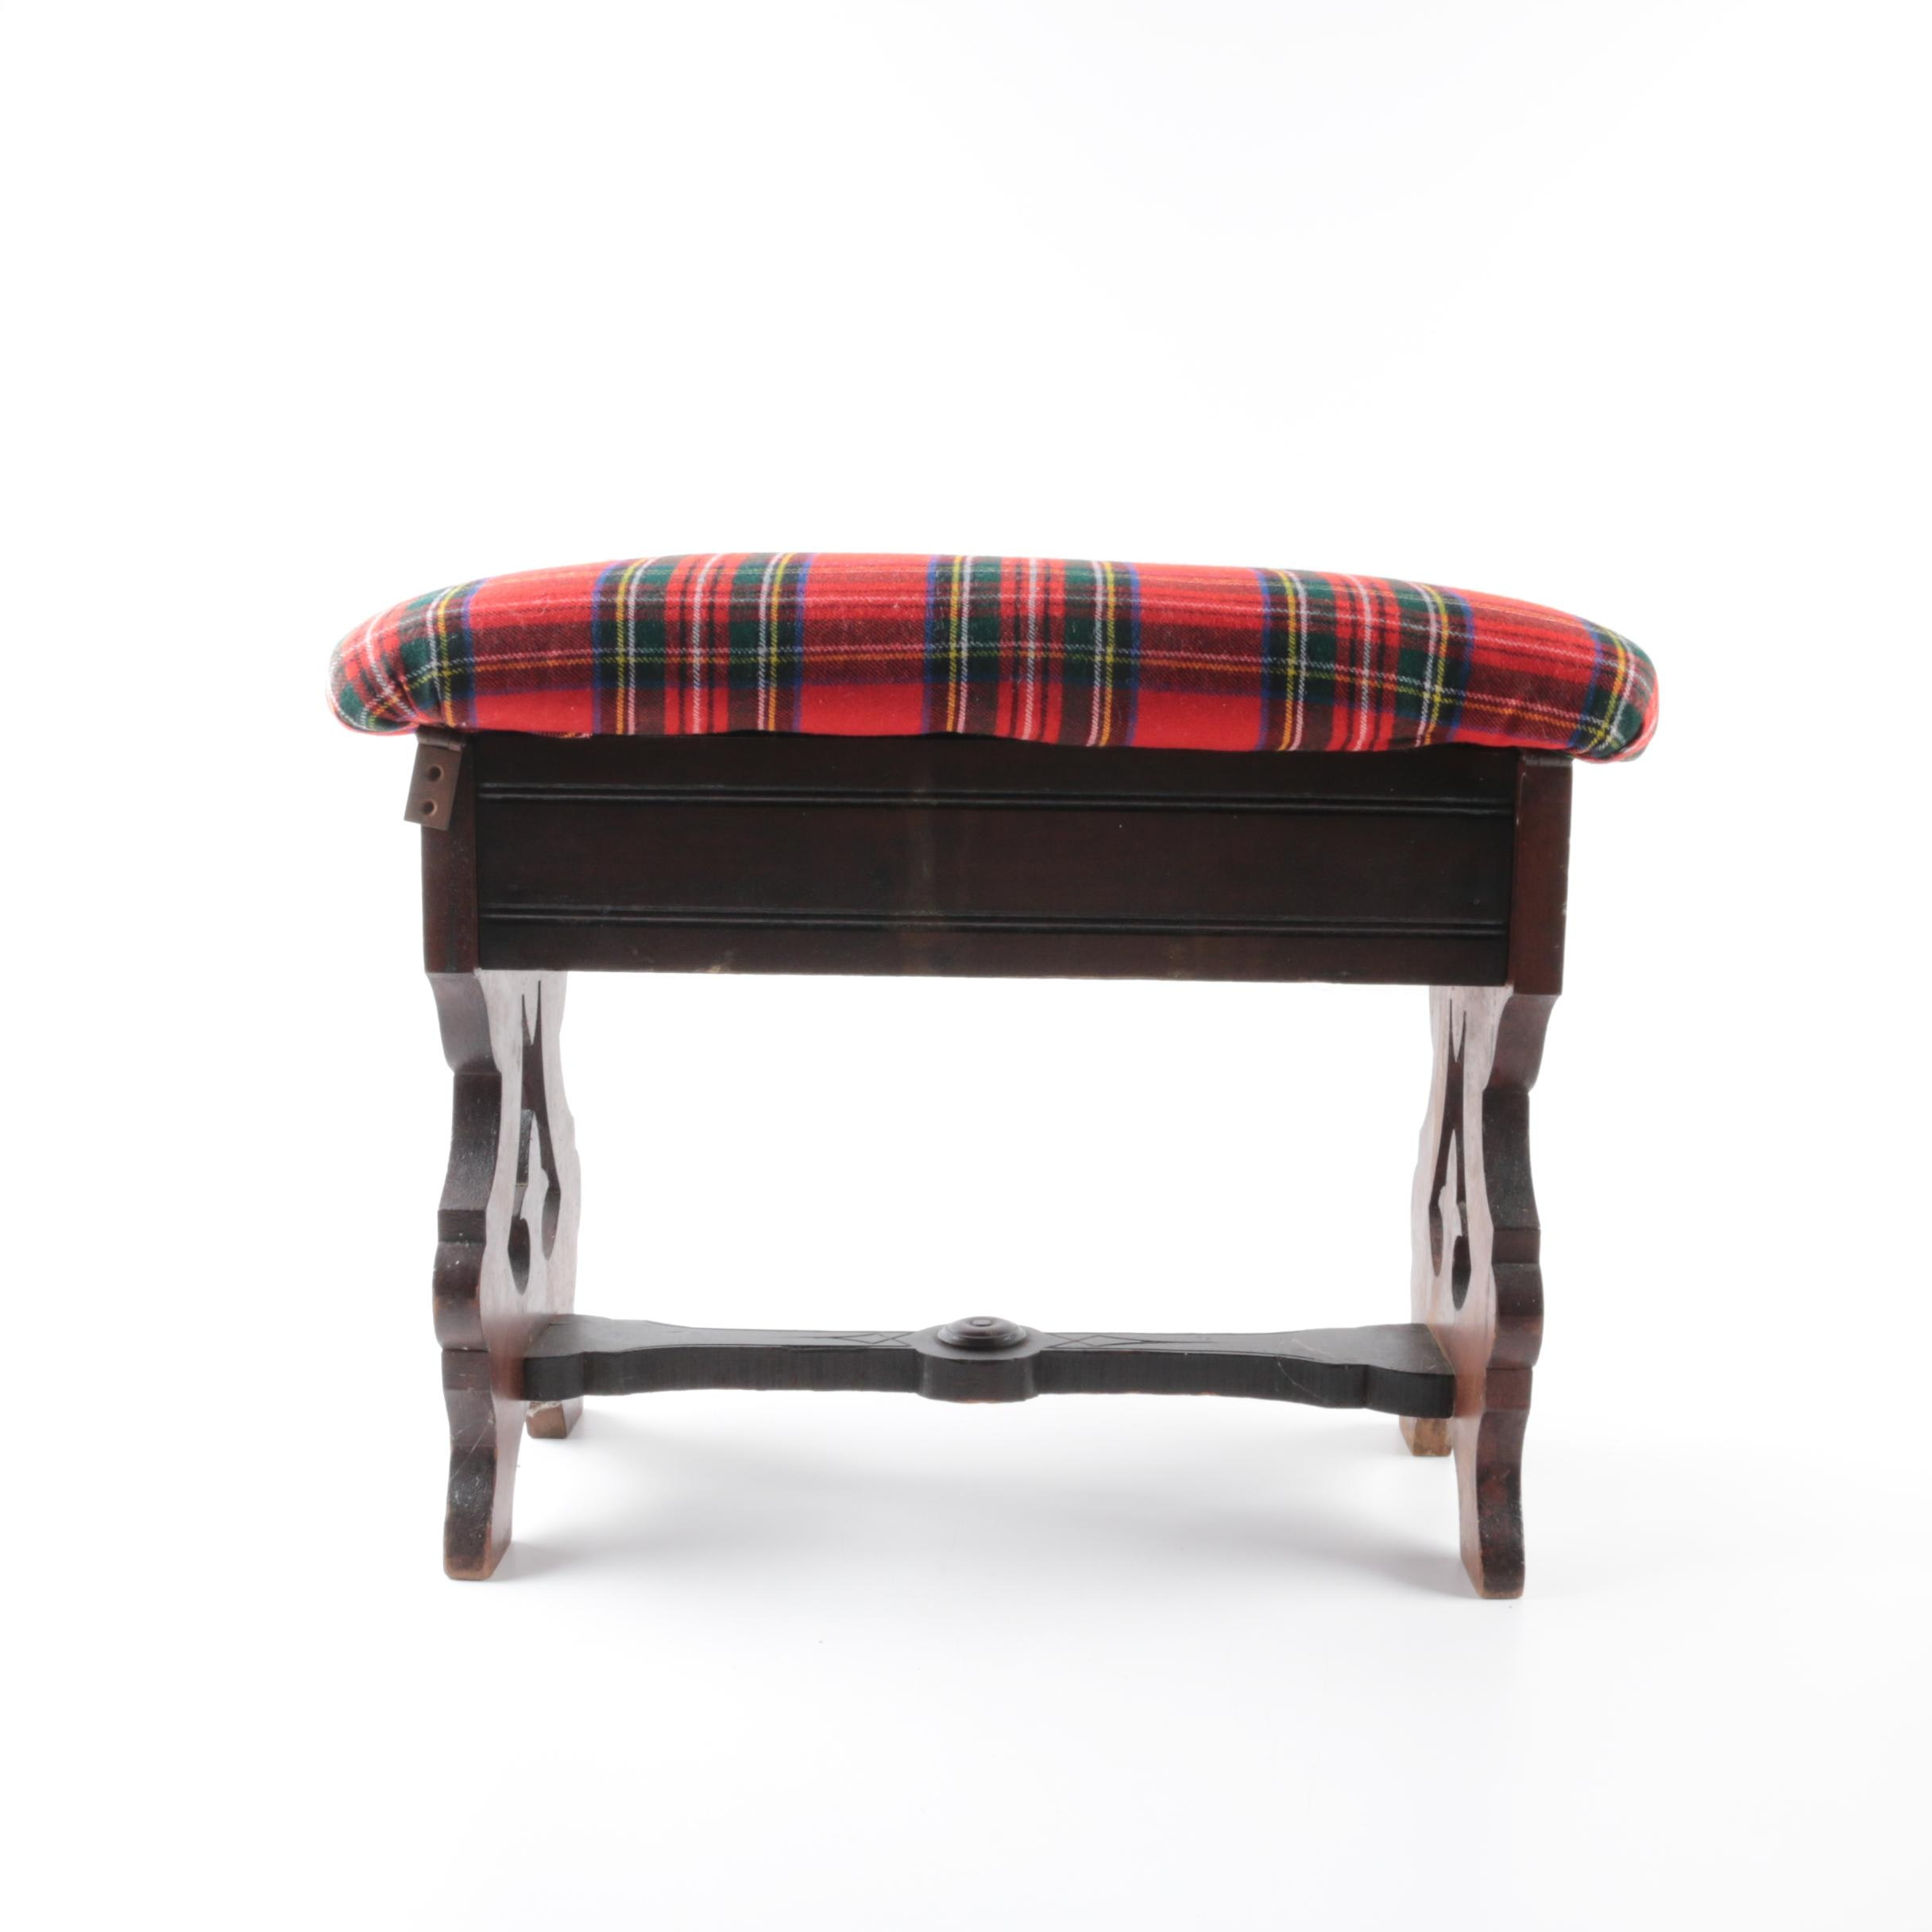 Victorian Walnut Stool with Plaid Upholstered Seat